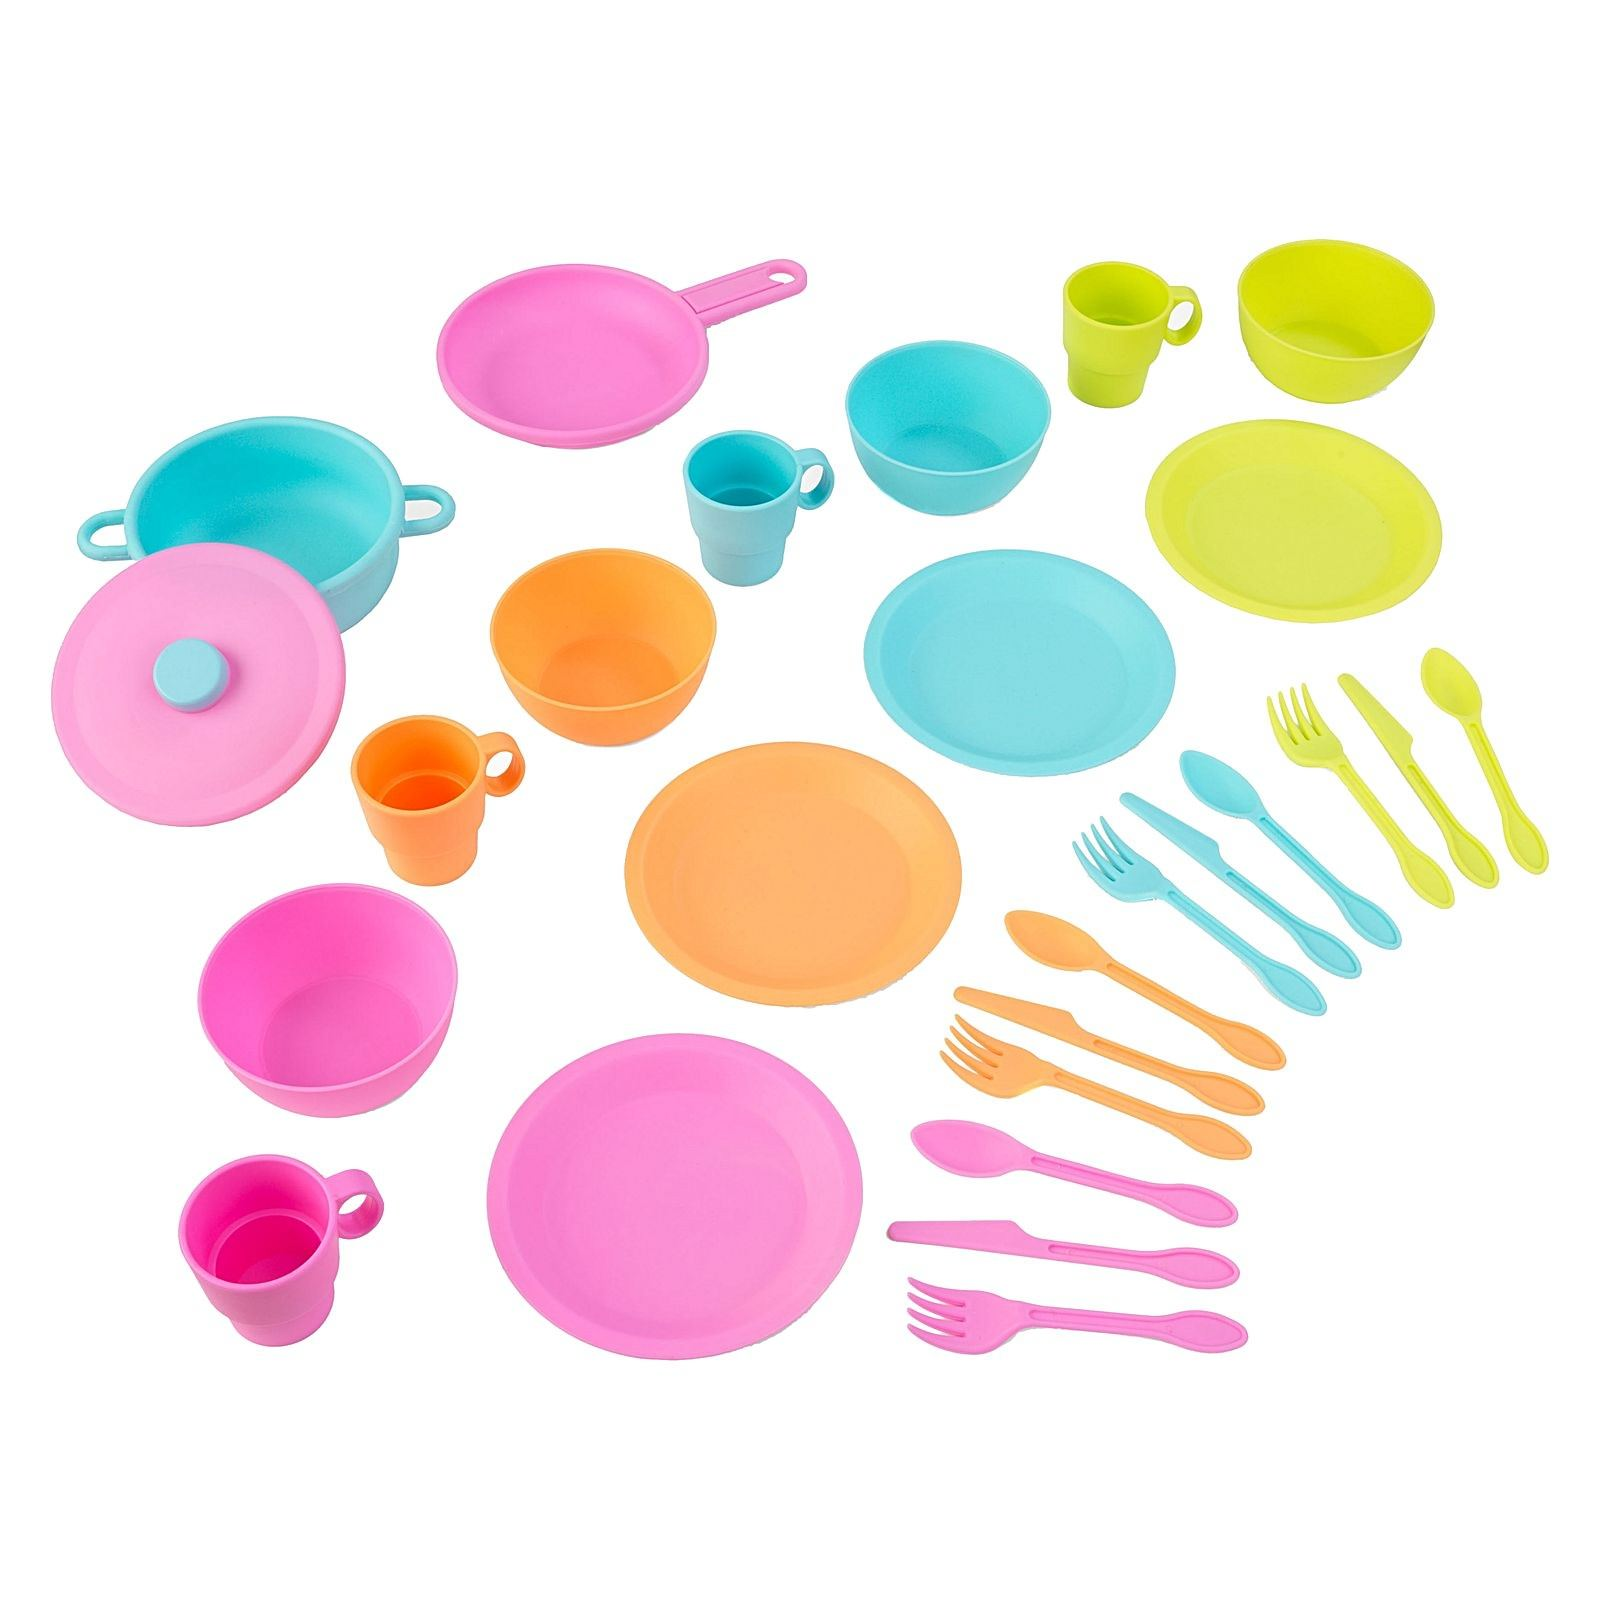 KidKraft 27 Piece Bright Cookware Playset